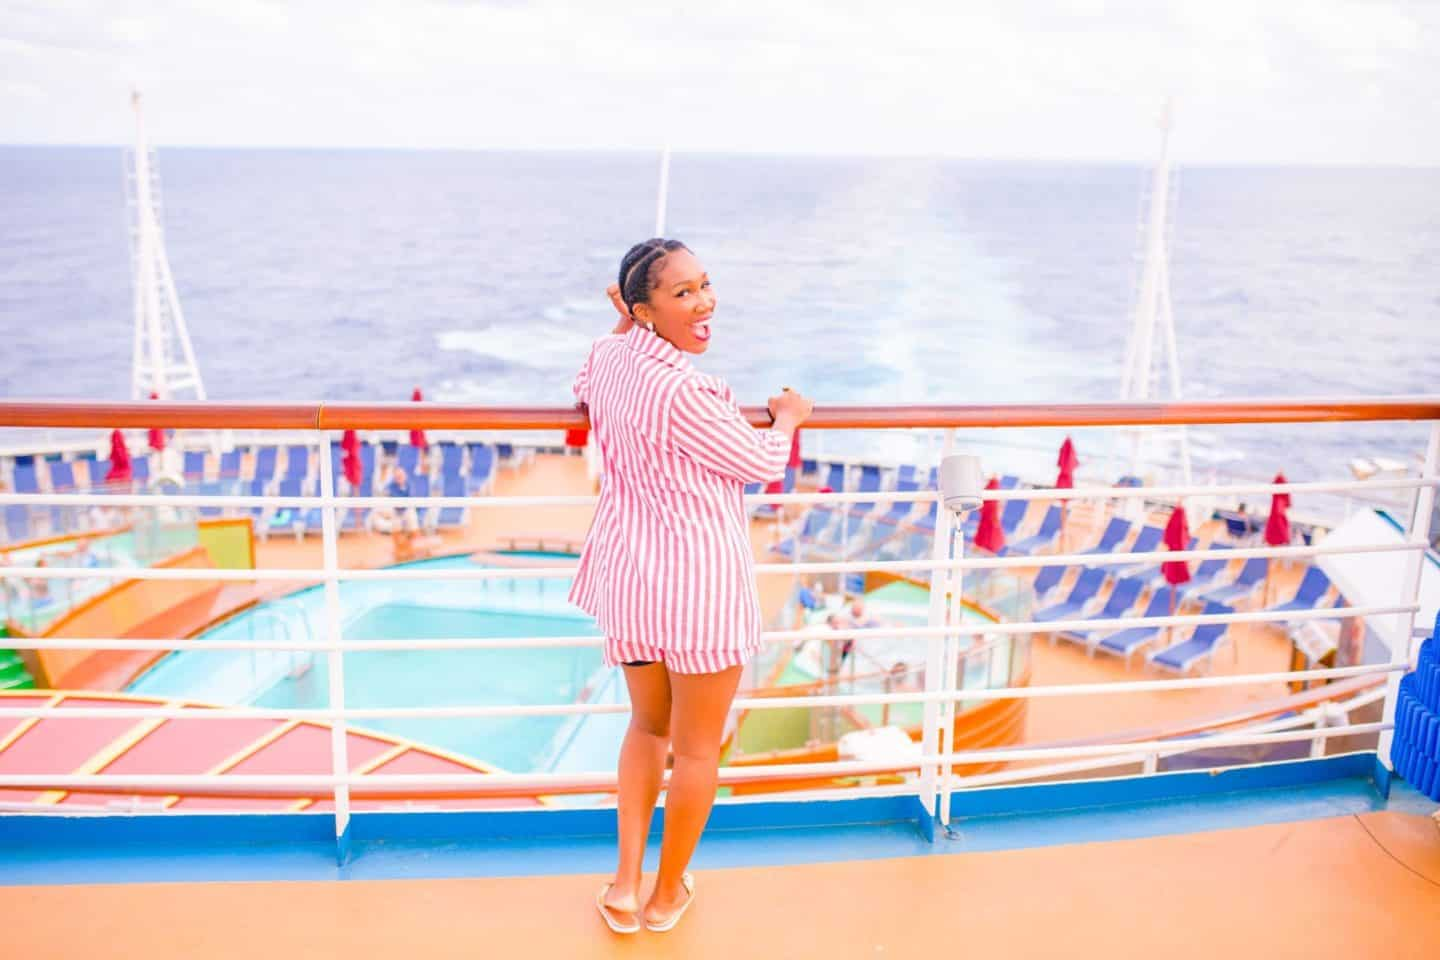 Carnival Cruise ship Vista is the premier of the fleet